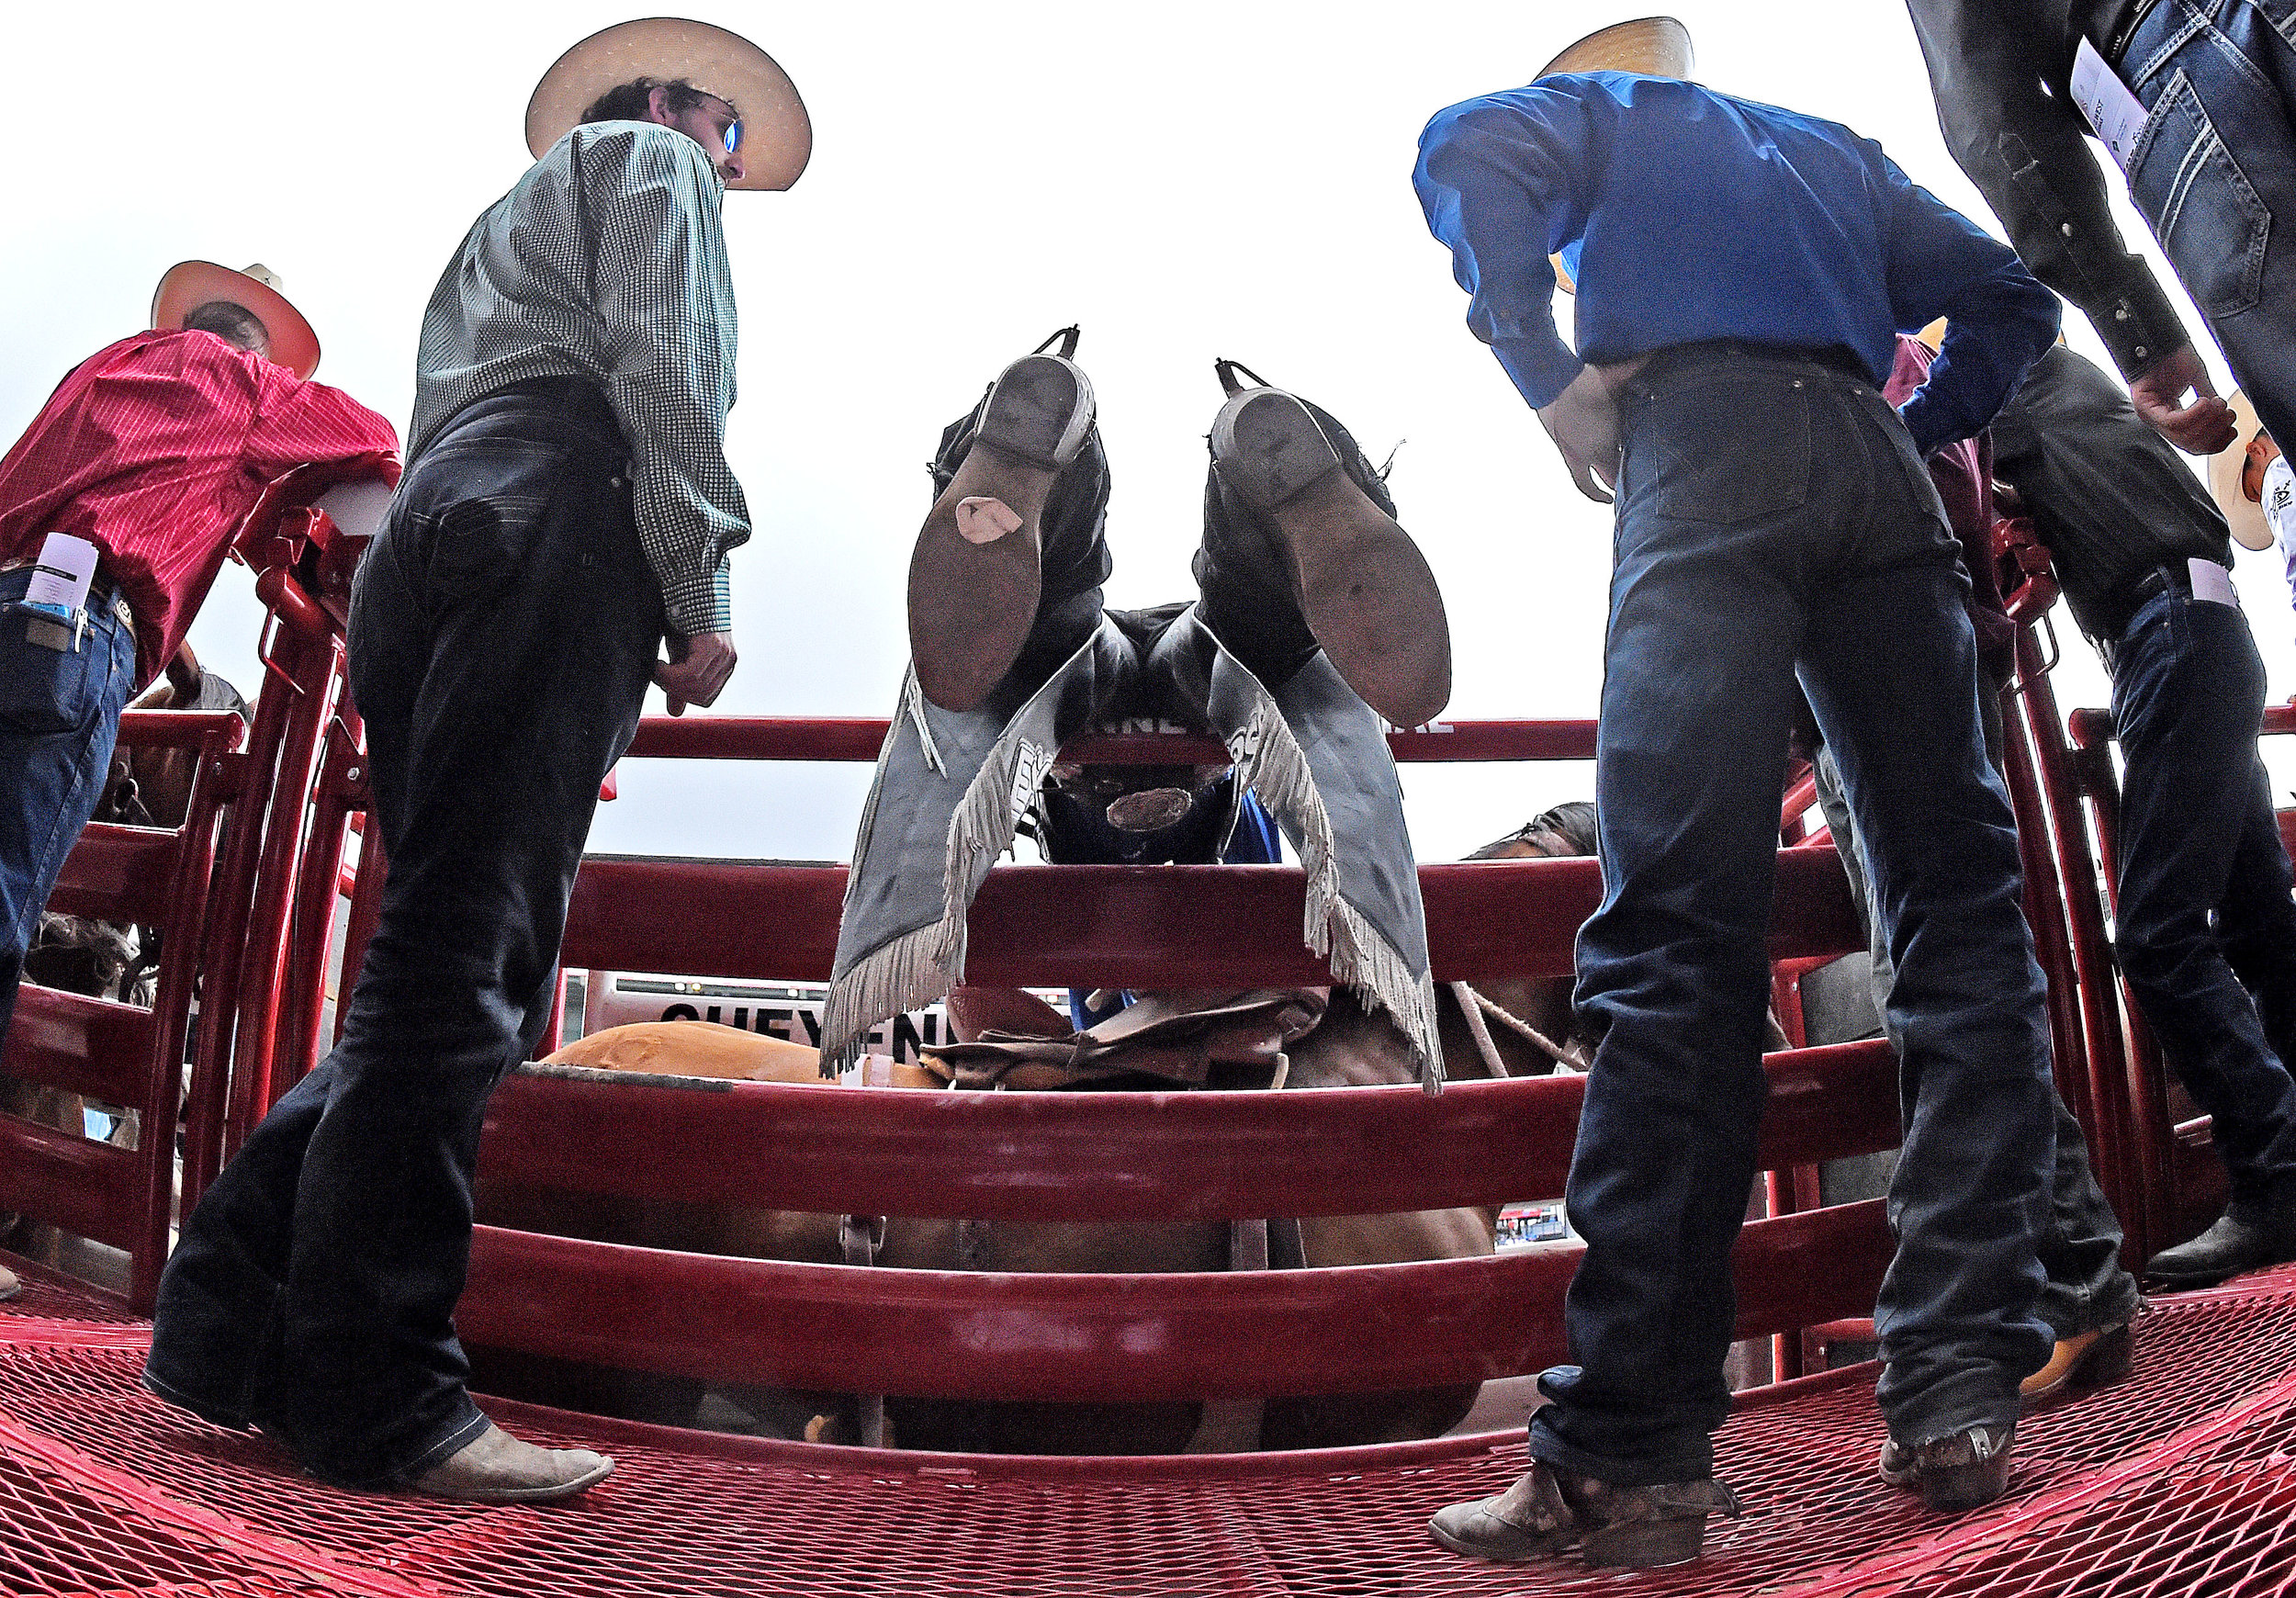 Defending saddle bronc world champion Ryder Wright from Midford, Utah, leans over the bucking chutes as he prepares to ride Chill Wills during the 6th performance at the 122nd Cheyenne Frontier Days Rodeo at Frontier Park in Cheyenne, Wyoming Wednesday, July 25, 2018.